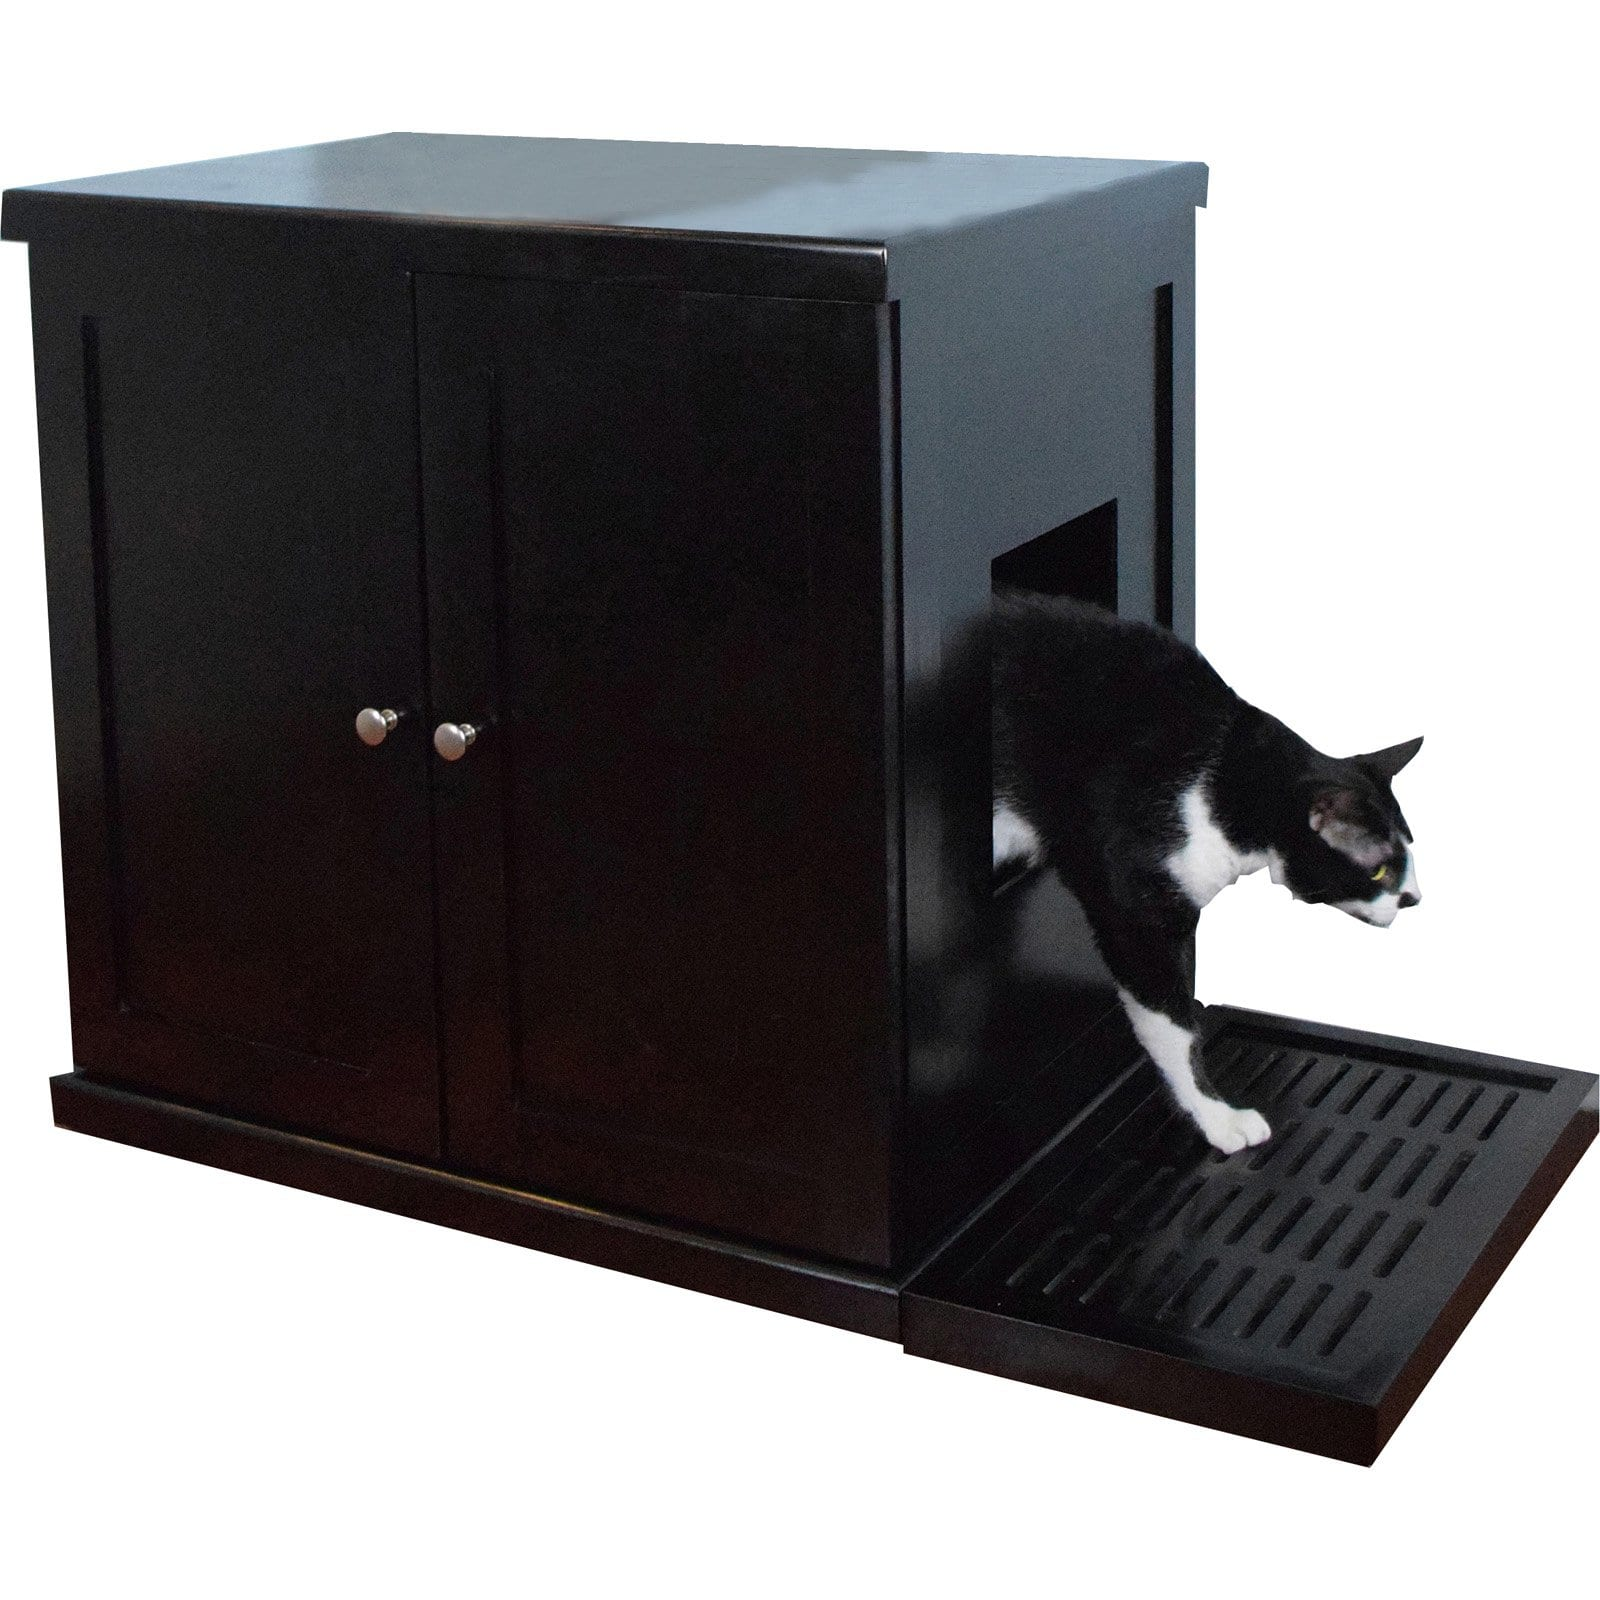 Cat Litter Box Furniture (Hides Litter Box)  $32.49 + FS